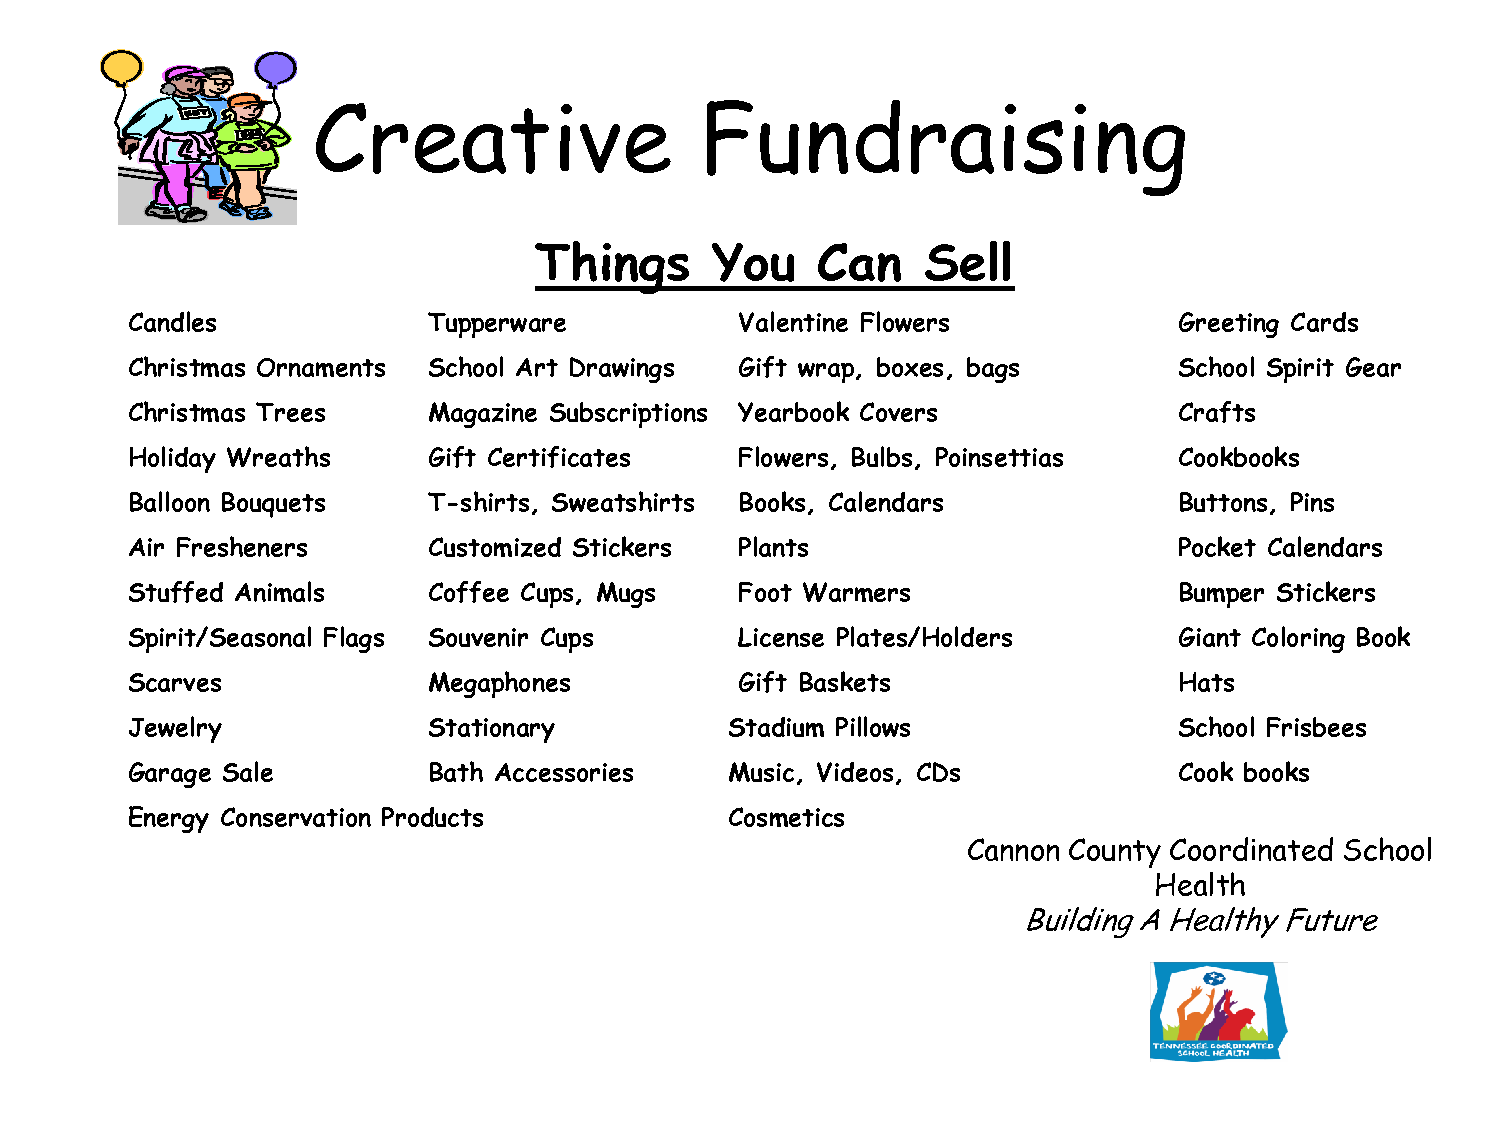 Fundraising Craft Ideas For Schools